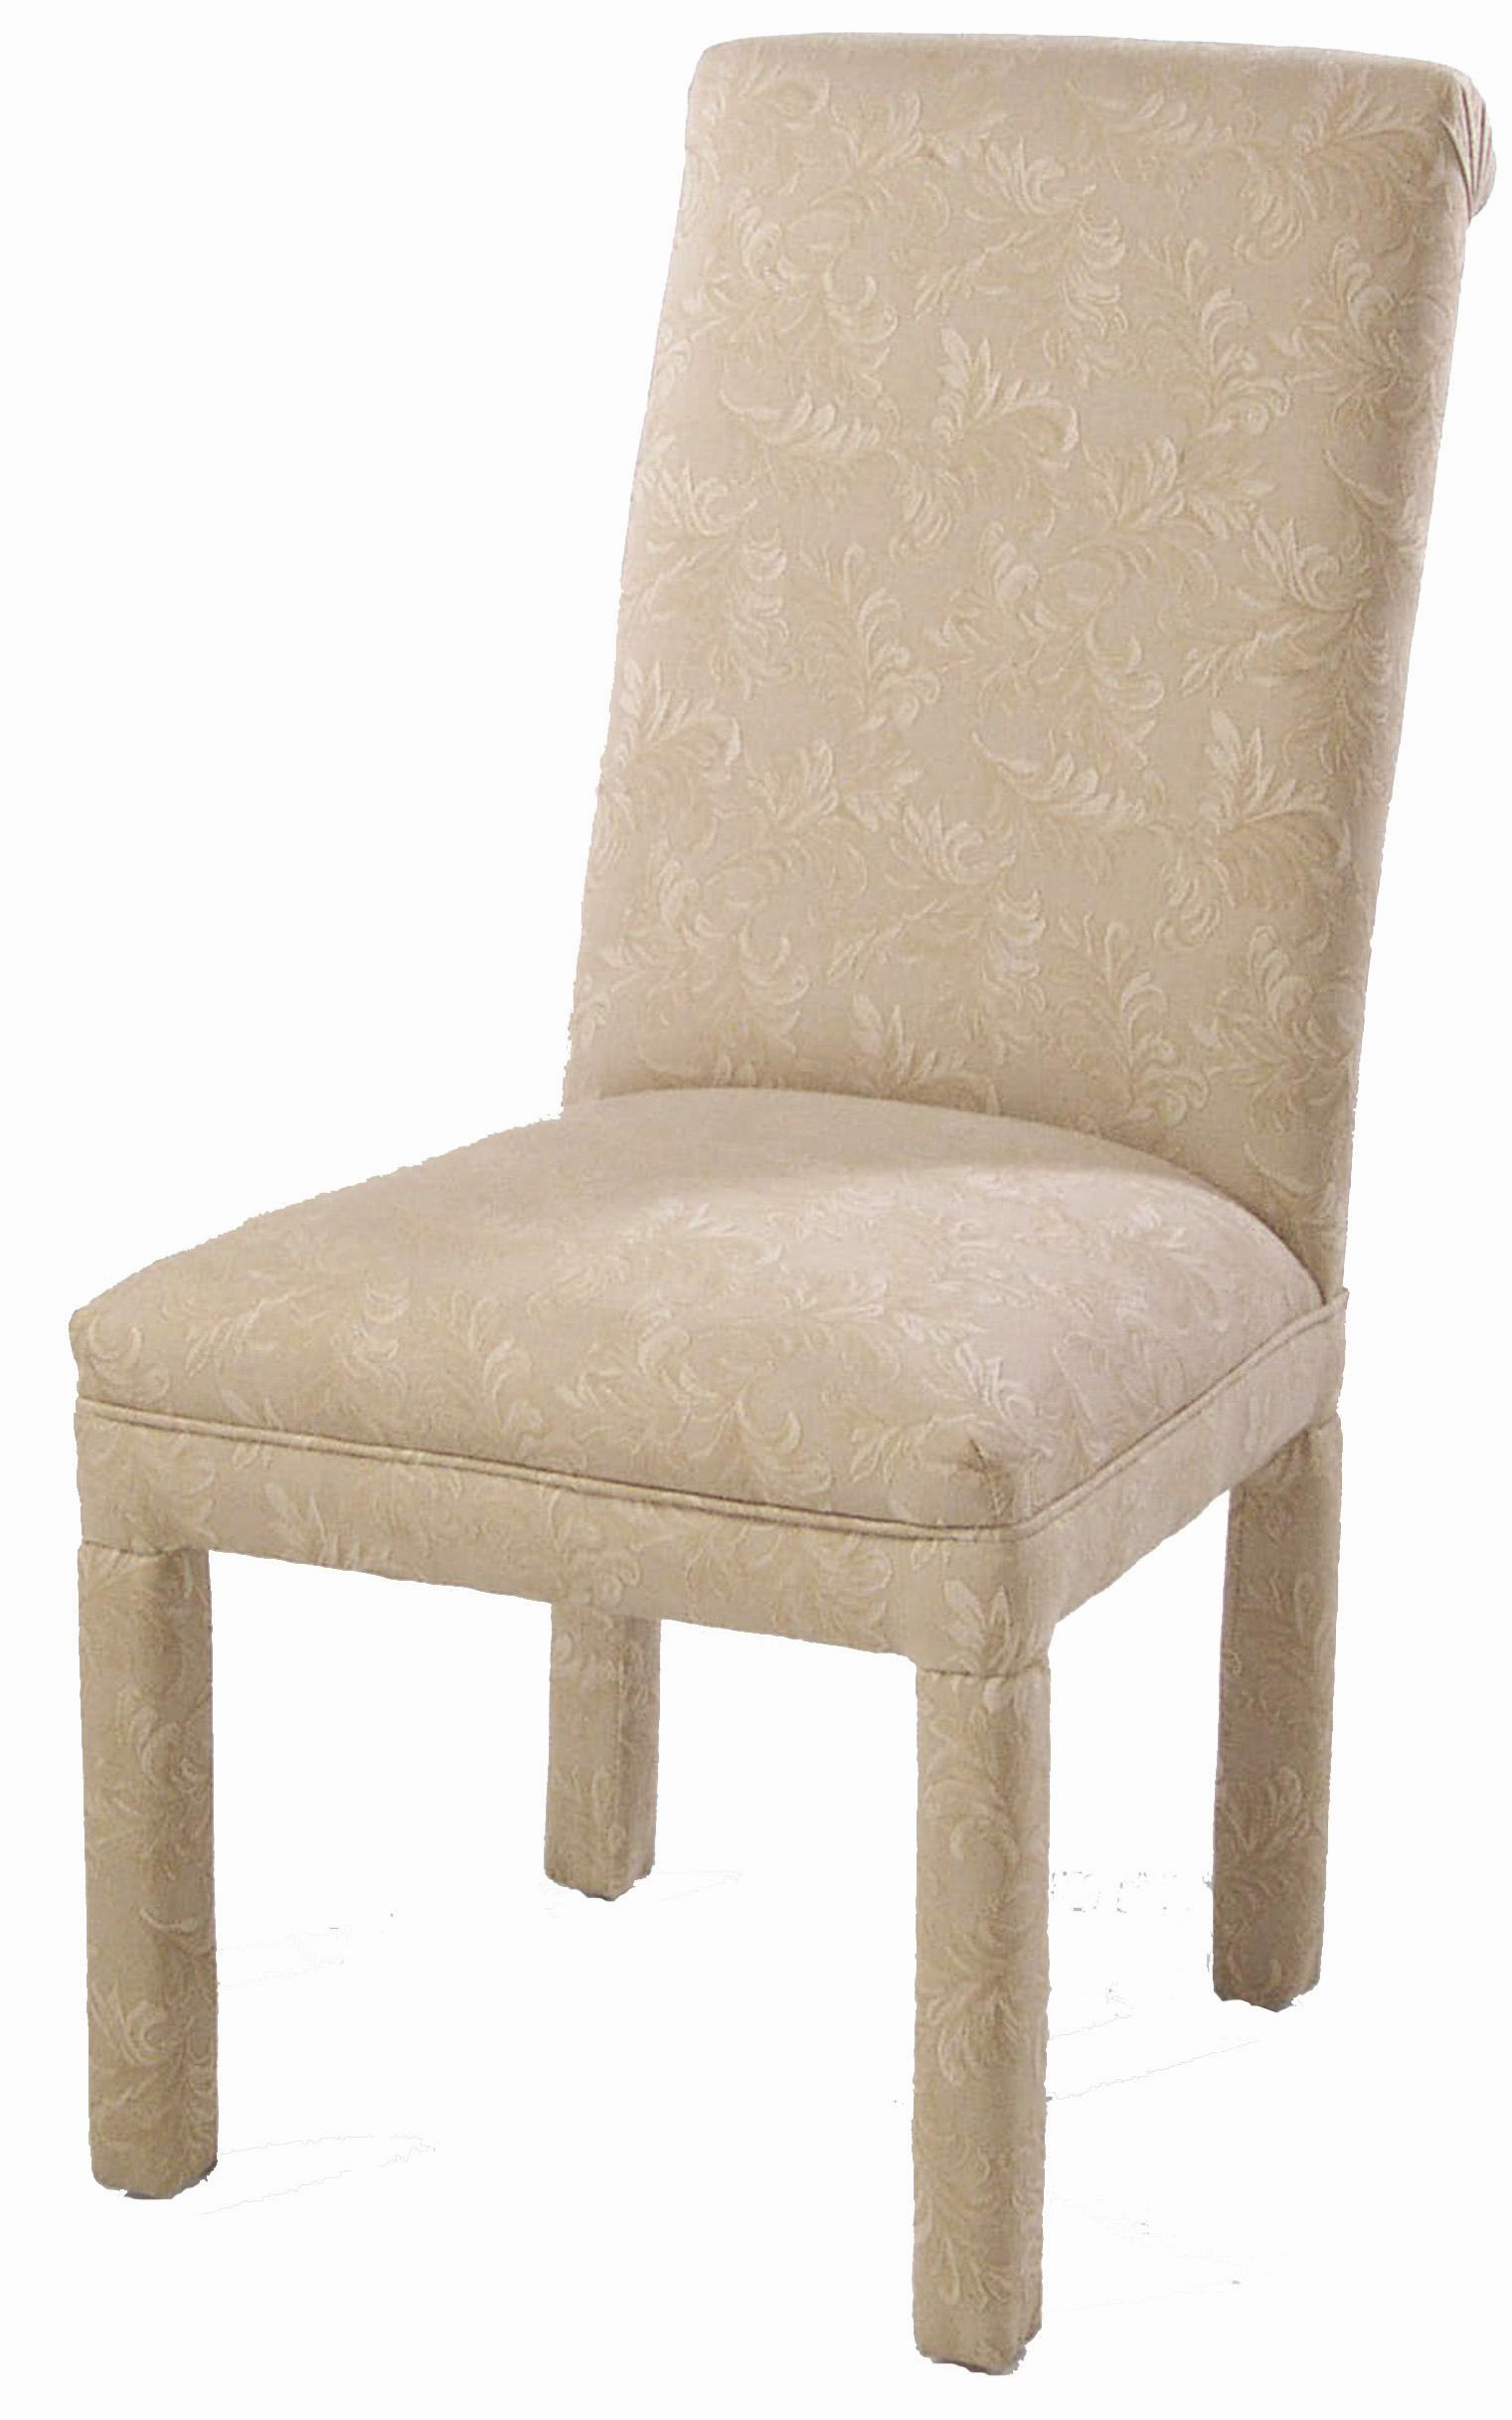 Upholstered Furniture Lancaster Pa Upholstered Dining Chair By Cmi Wolf Furniture